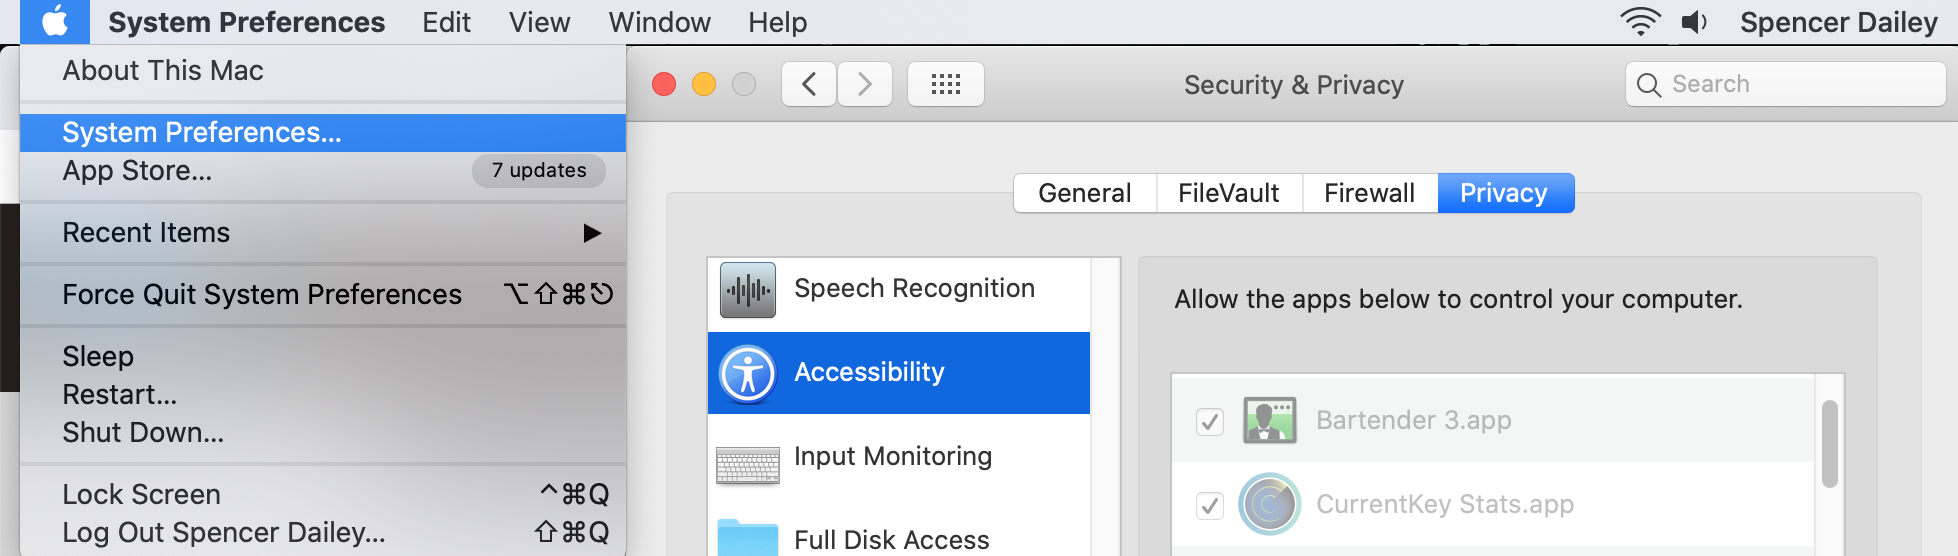 This will allow Room hotkeys to be enabled on your Mac.